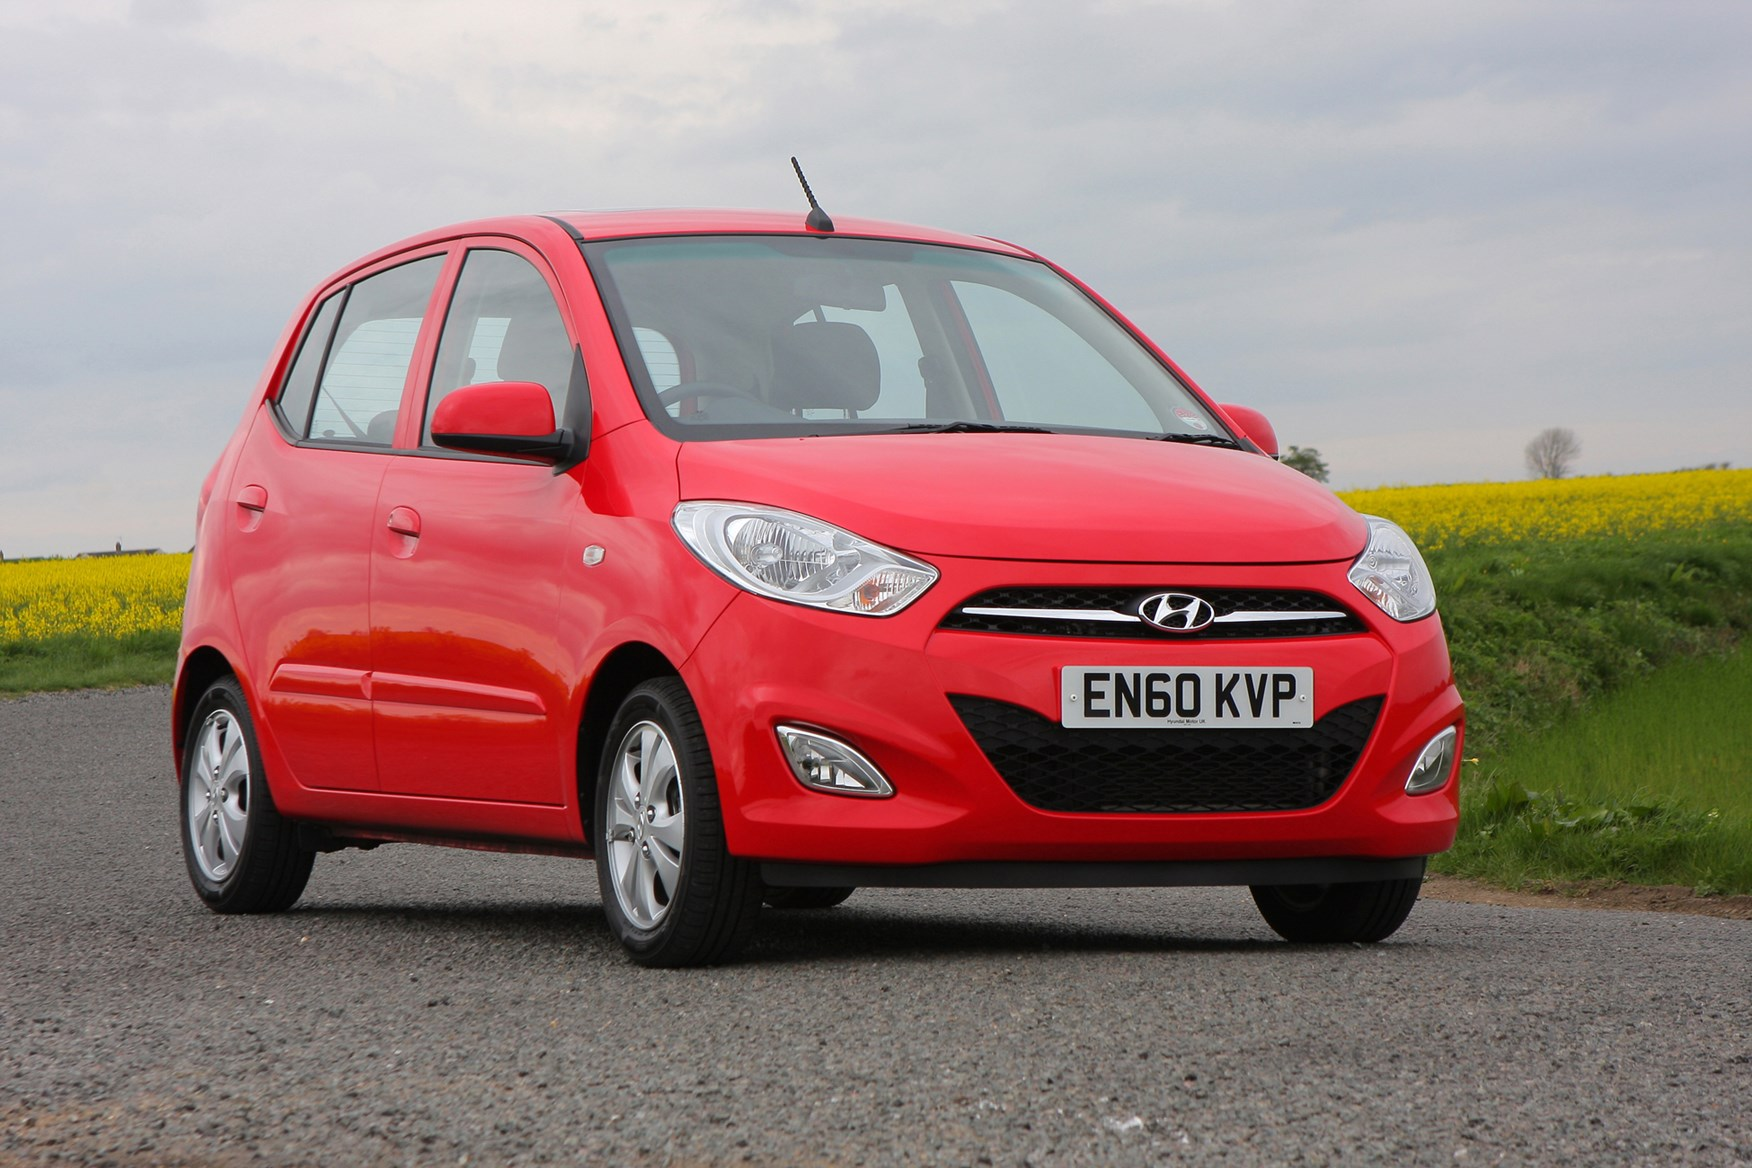 Hyundai i10 Hatchback (2008 - 2013) Photos | Parkers